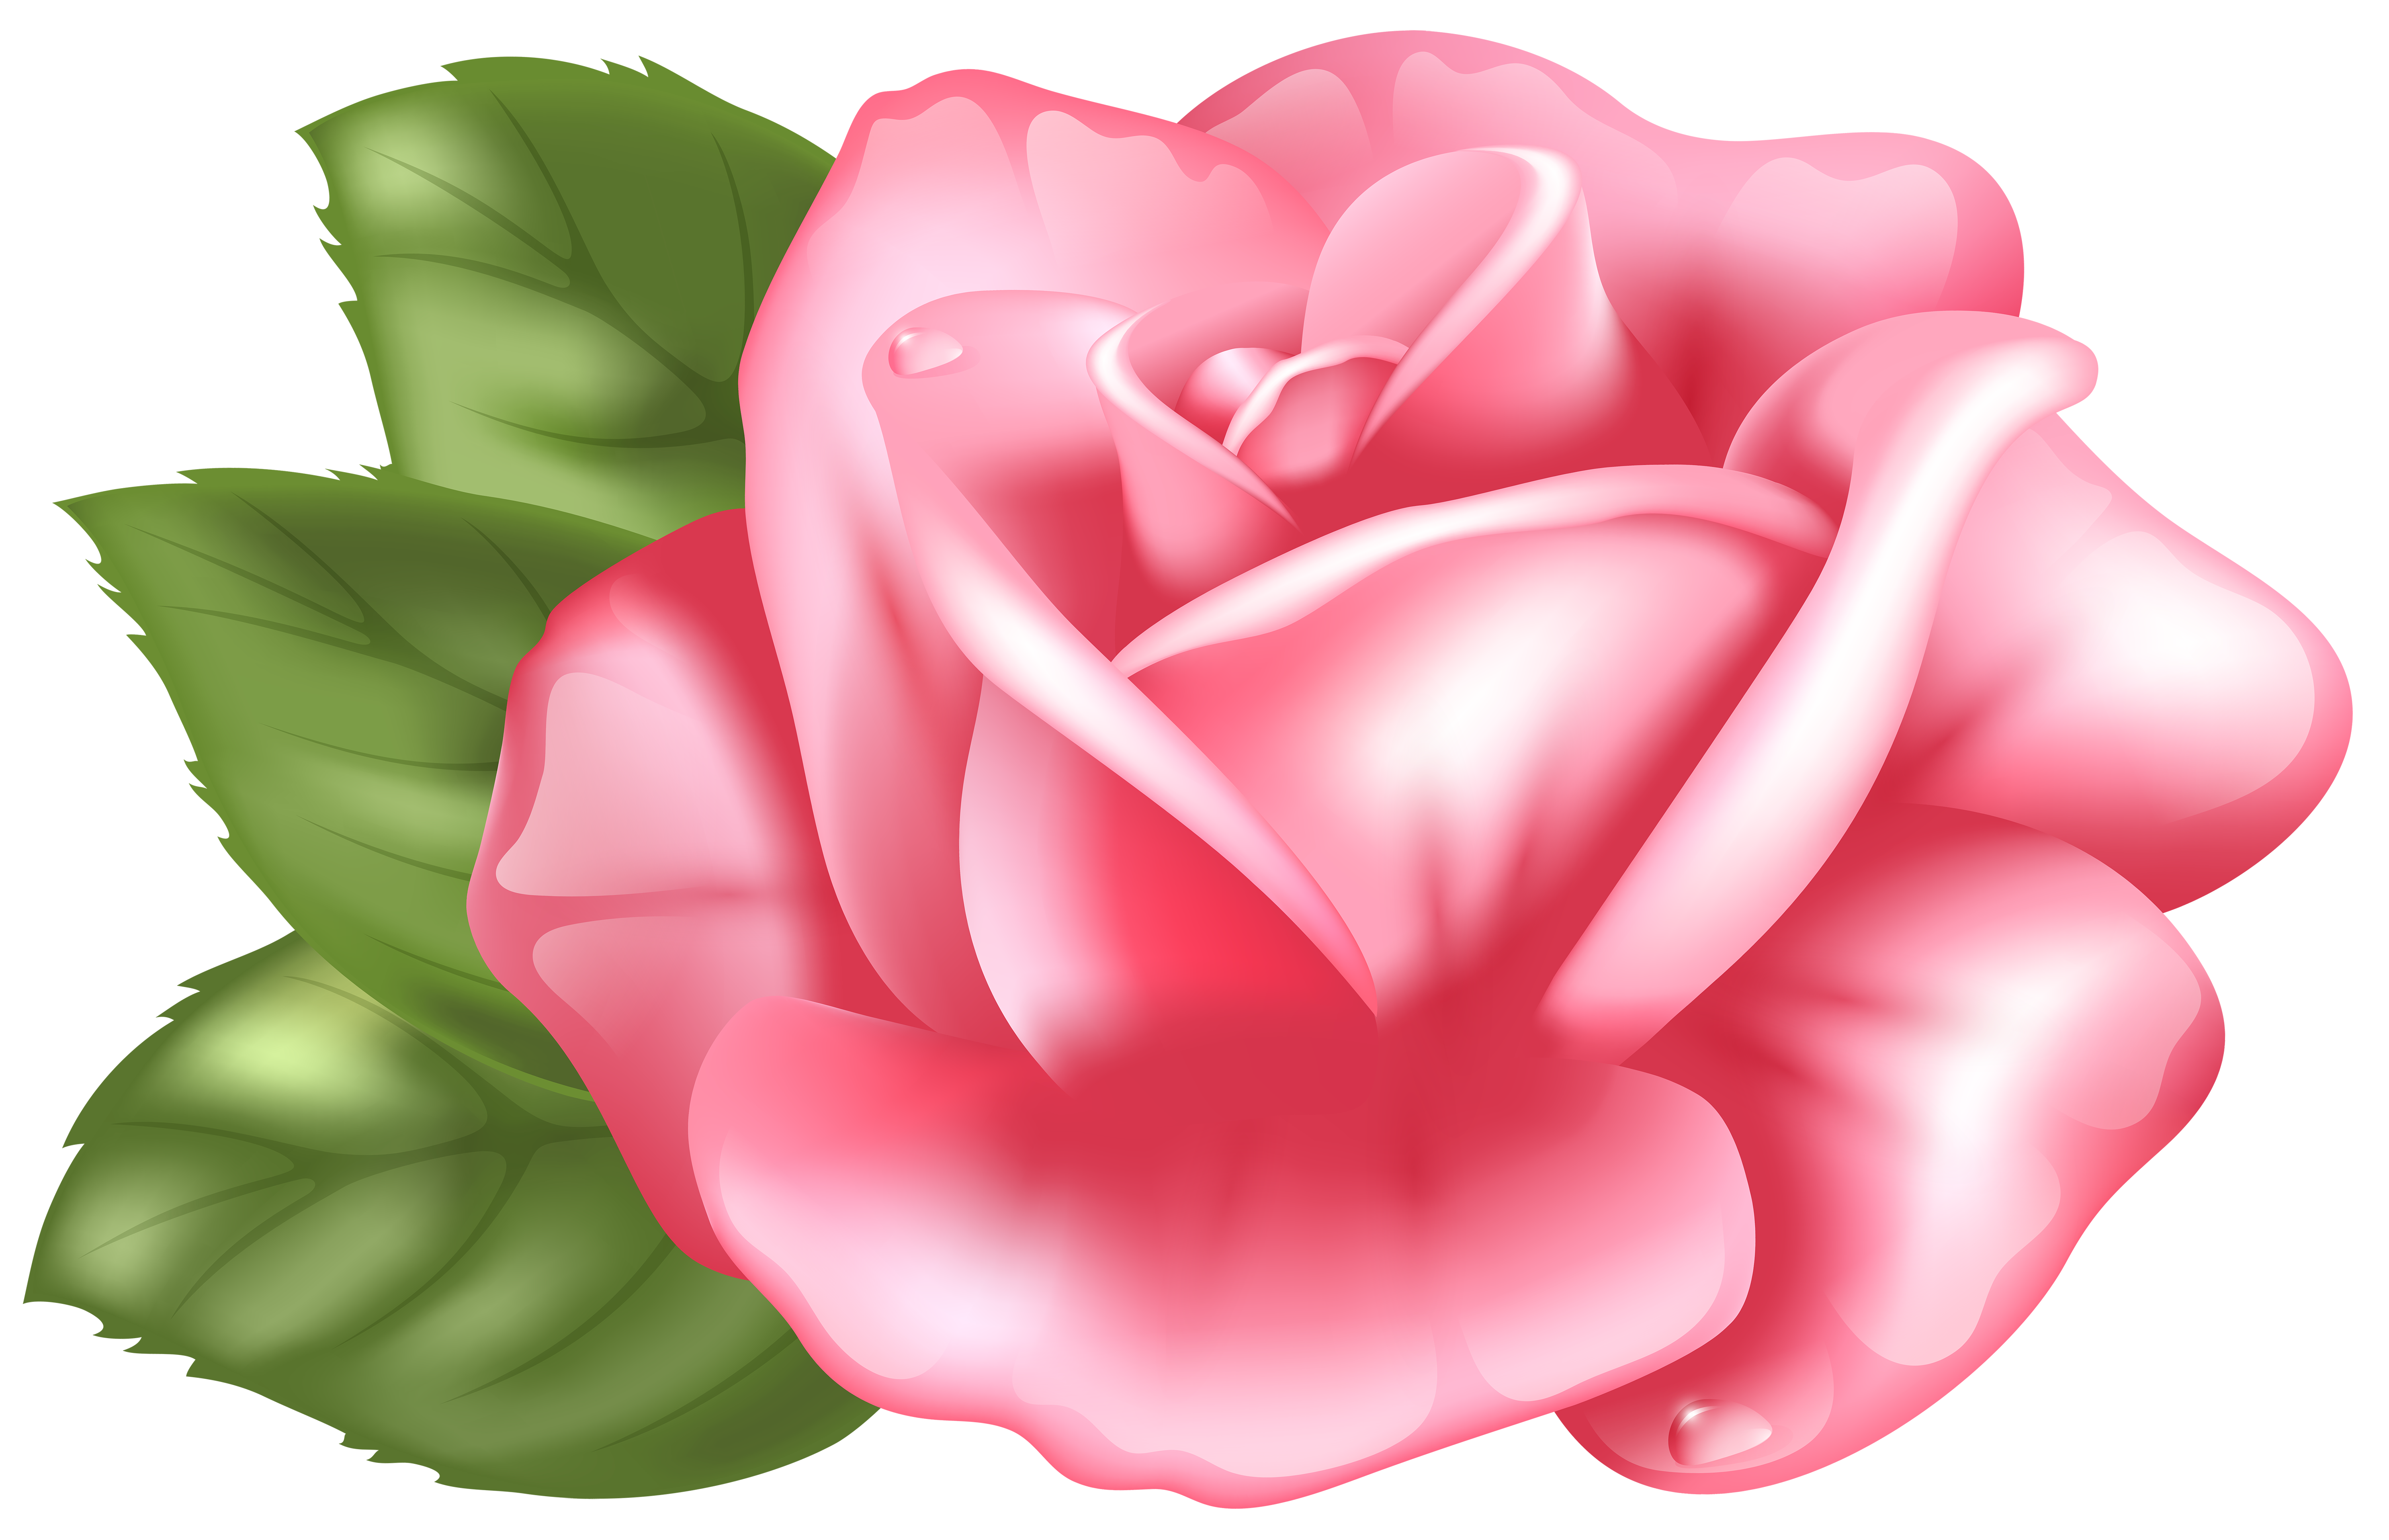 Clipart roses cartoon. Pink rose encode to